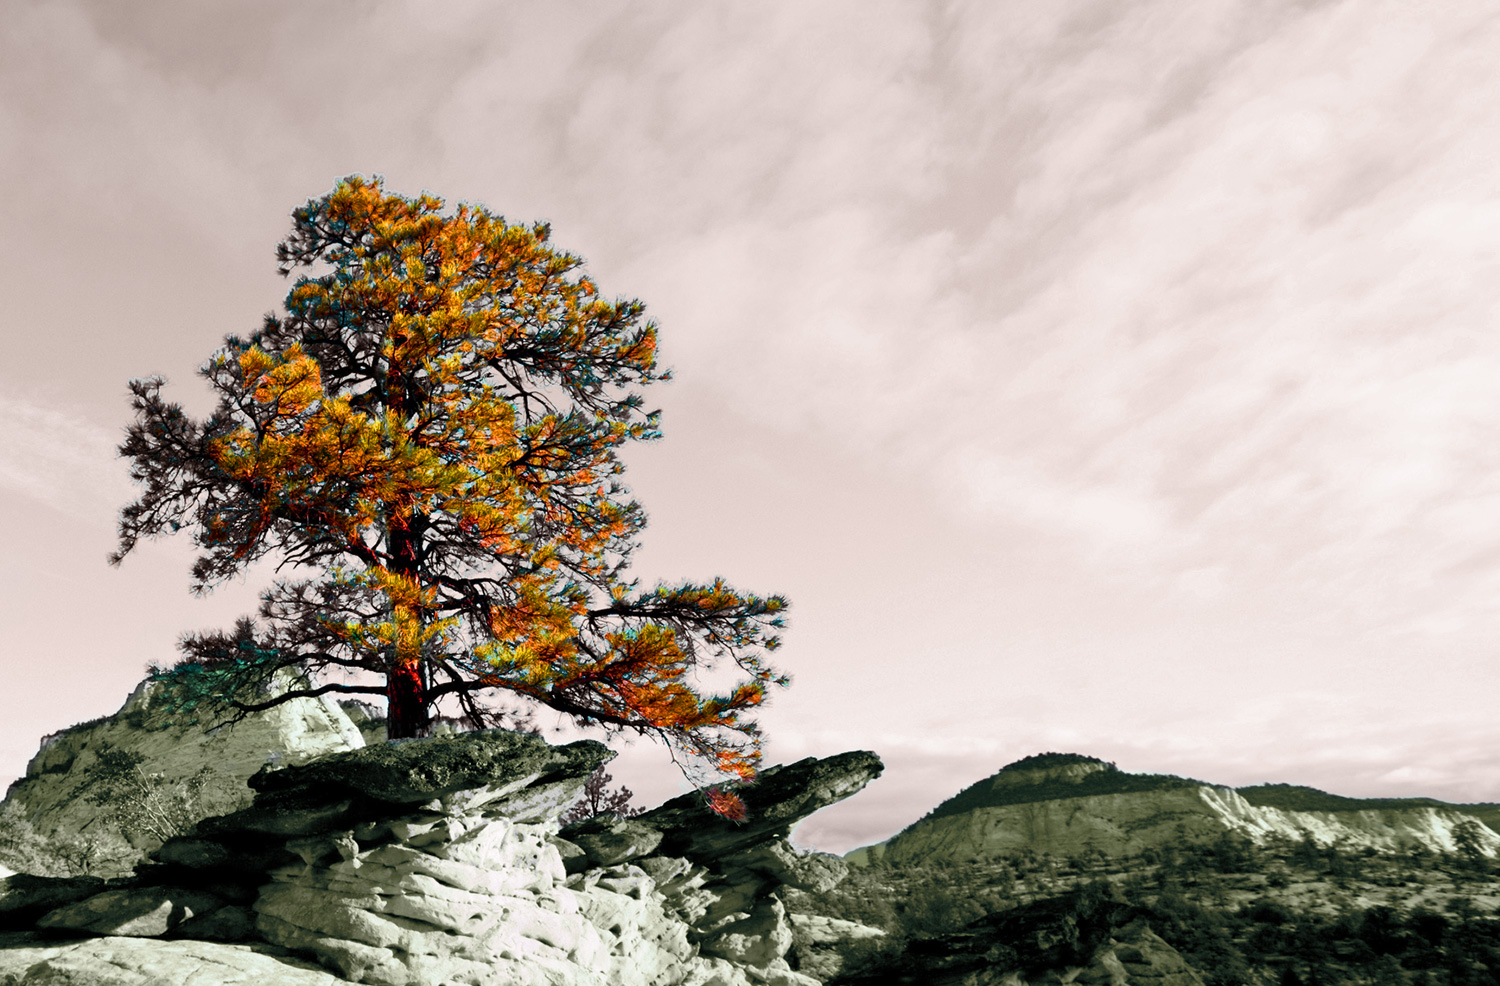 Photograph of a tree flourishing in the harsh climate of Zion's National Park, Utah.